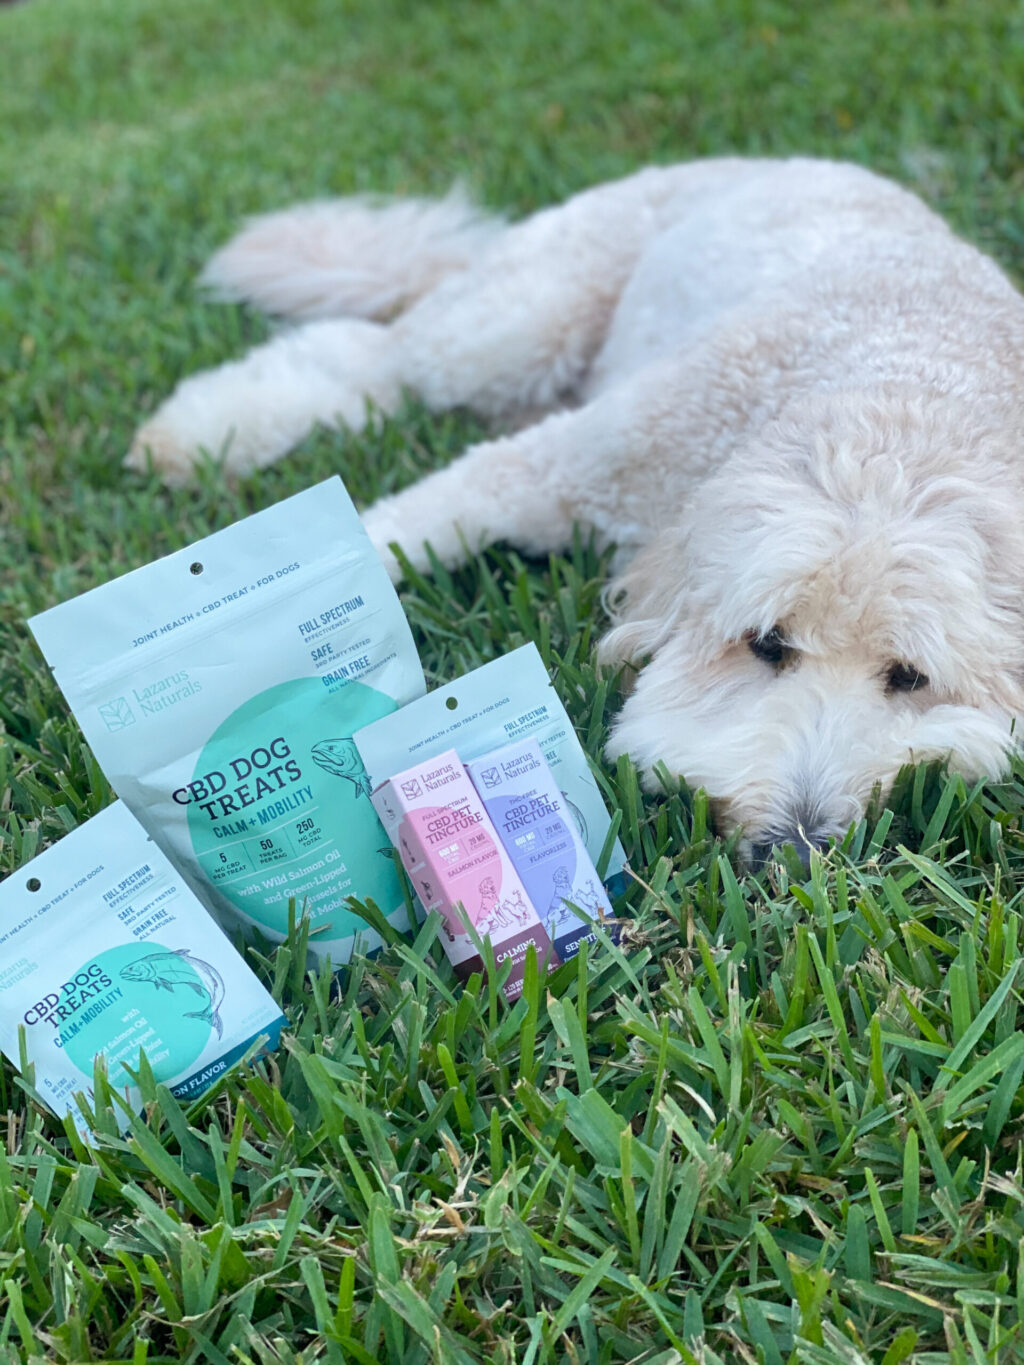 white goldendoodle lying in grass next to bags and bottles of cbd produts